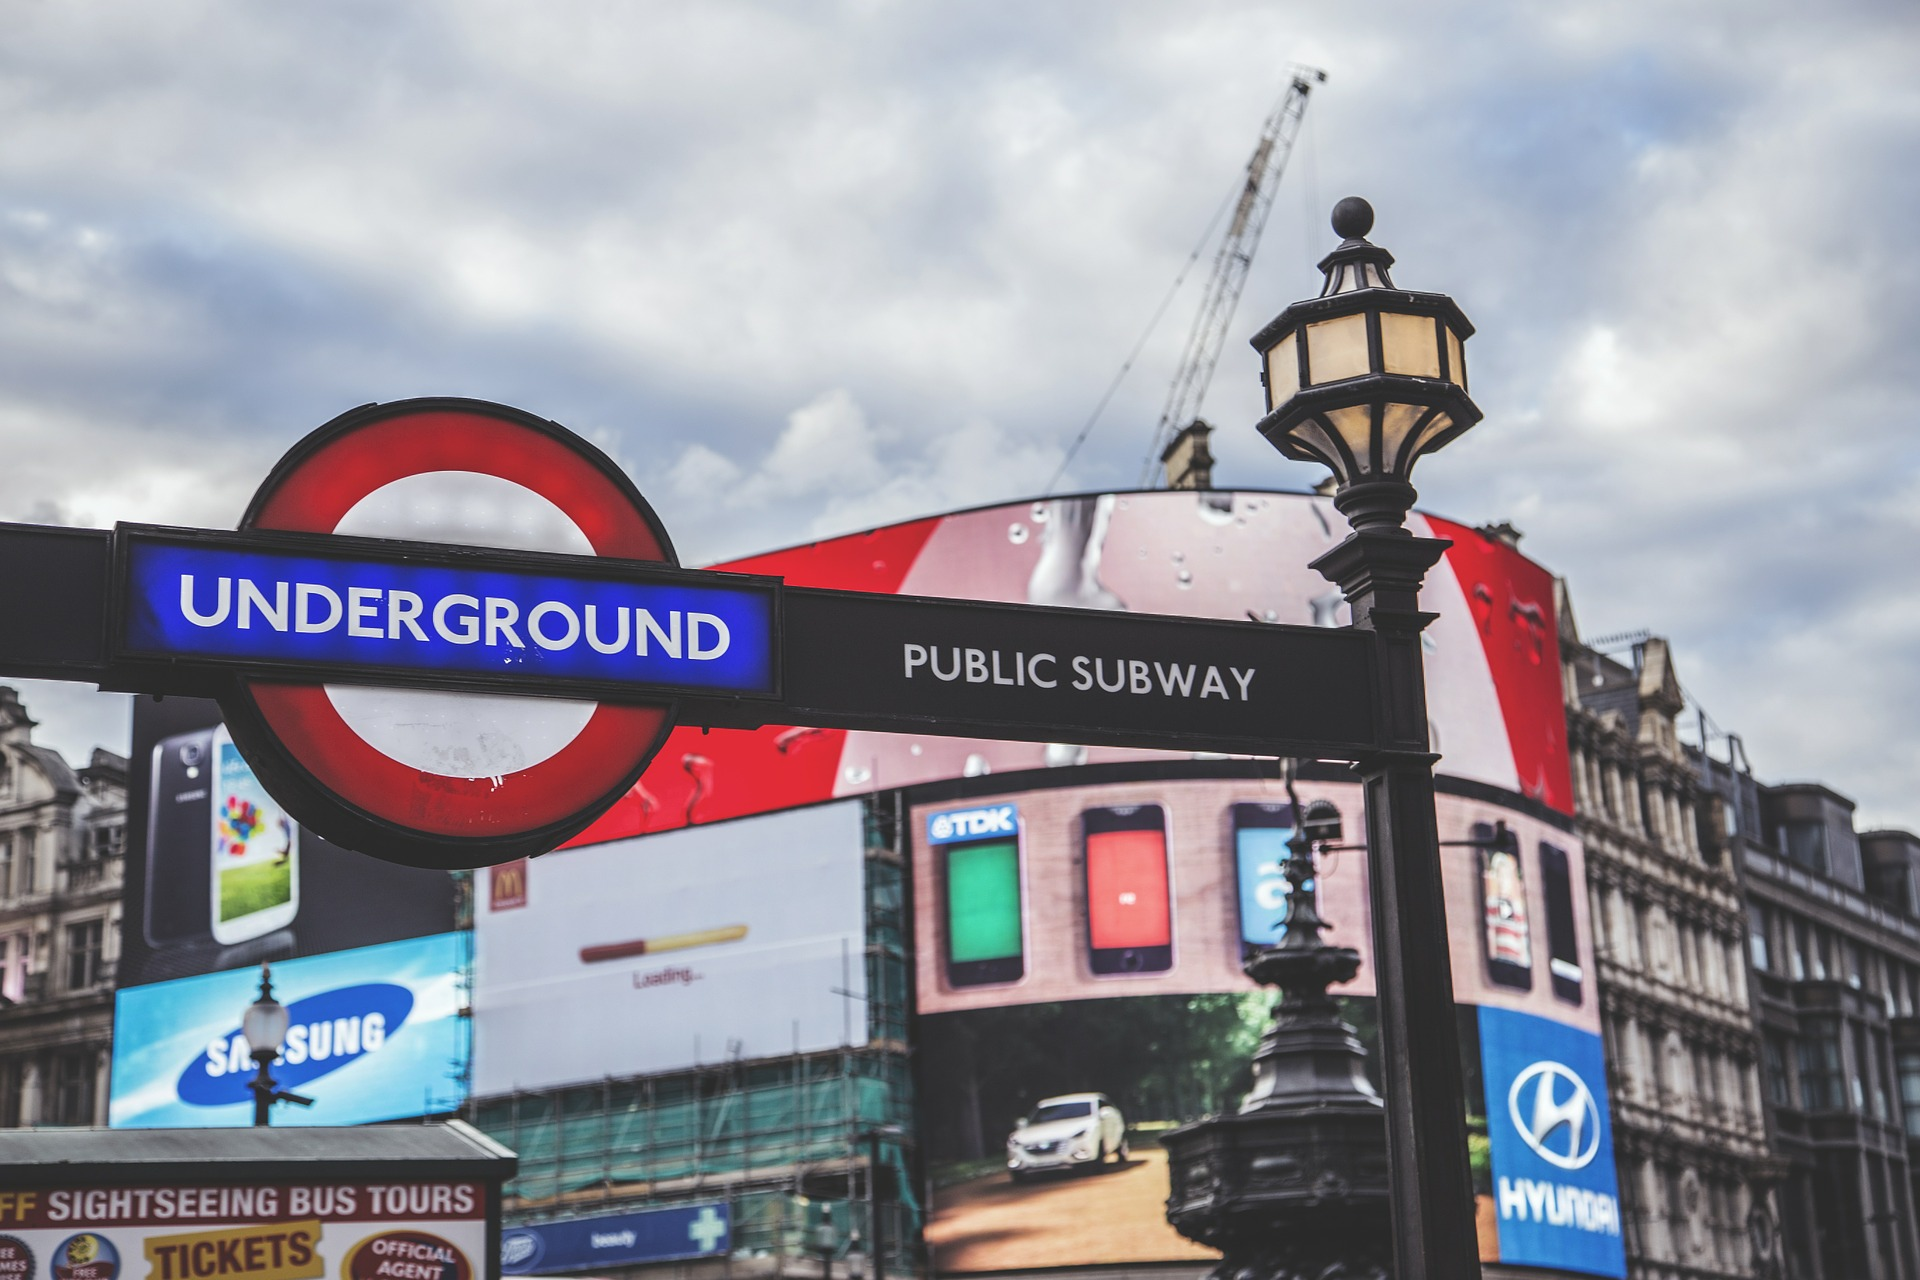 Piccadilly Circus Underground Station, London, UK